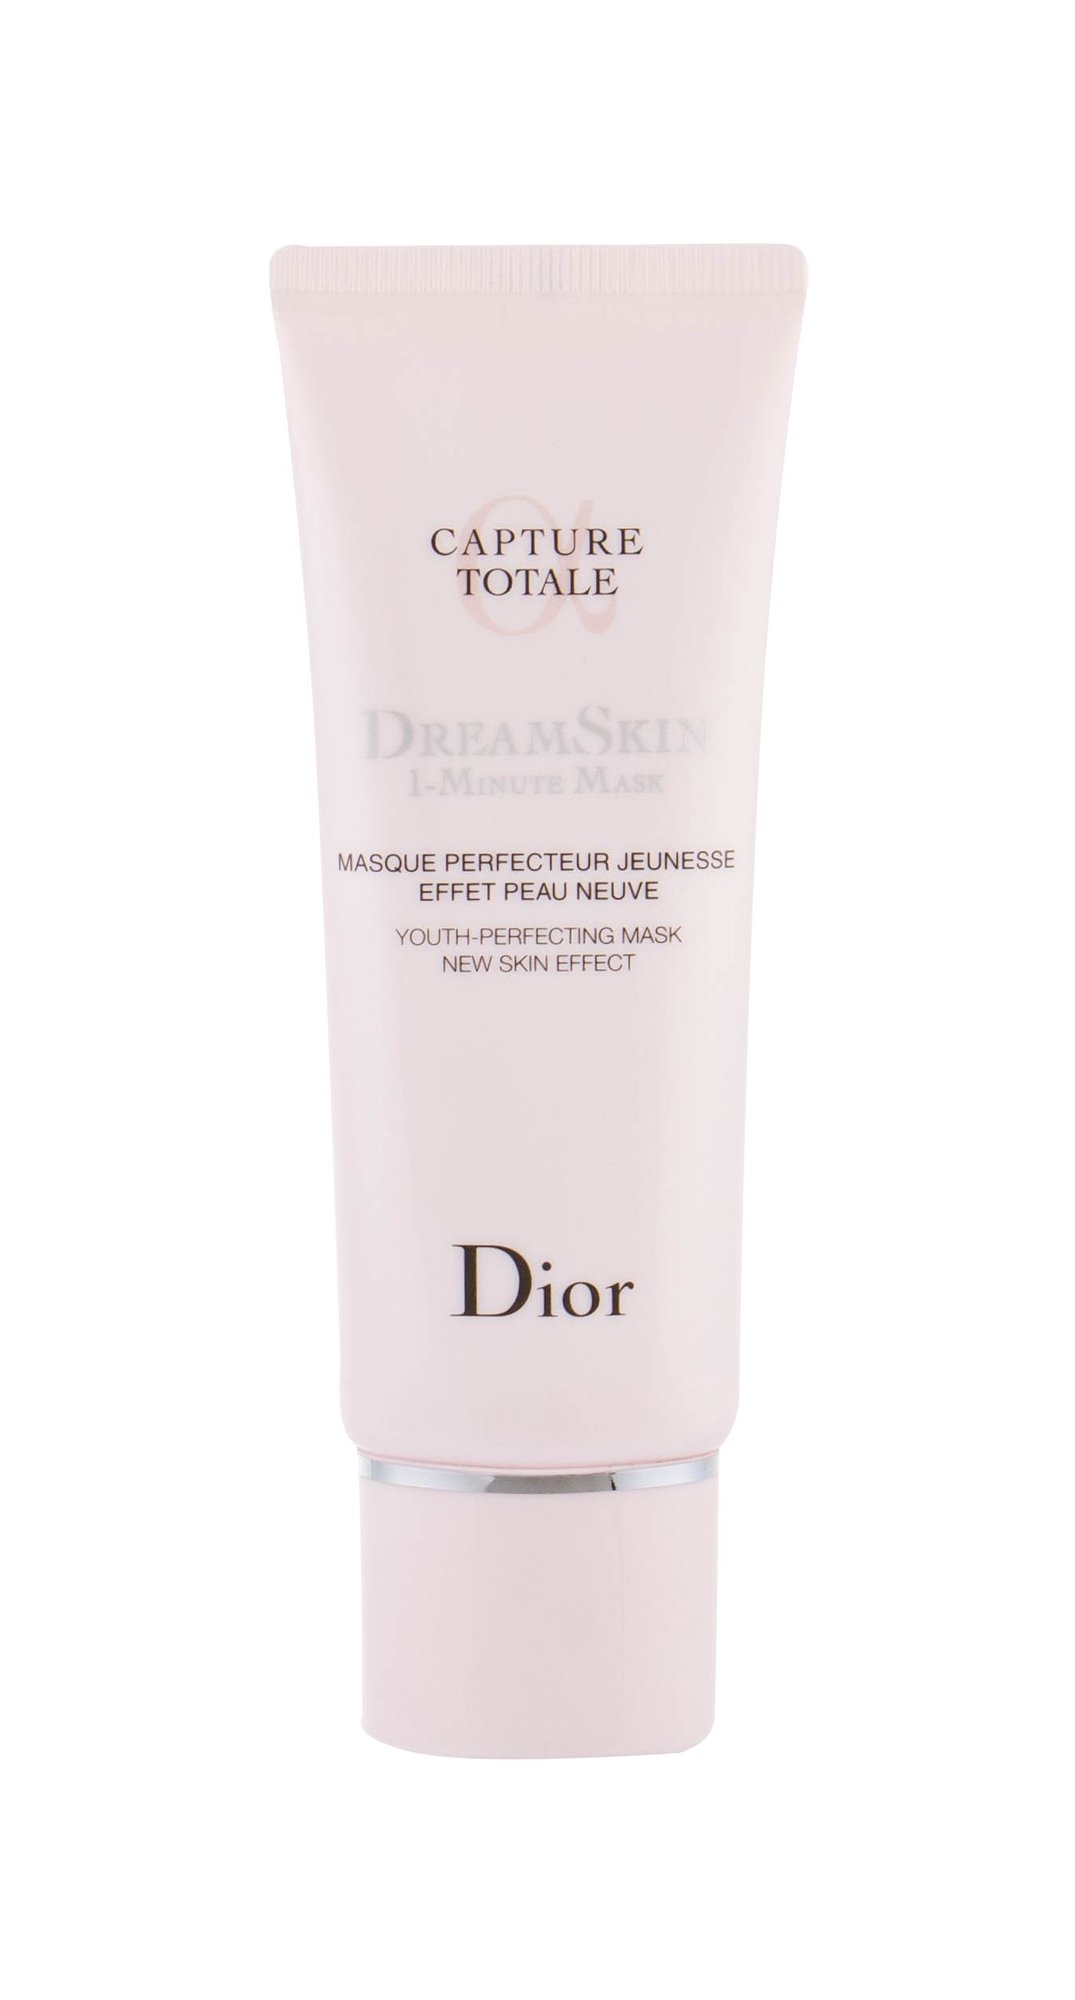 Christian Dior Capture Totale Face Mask 75ml